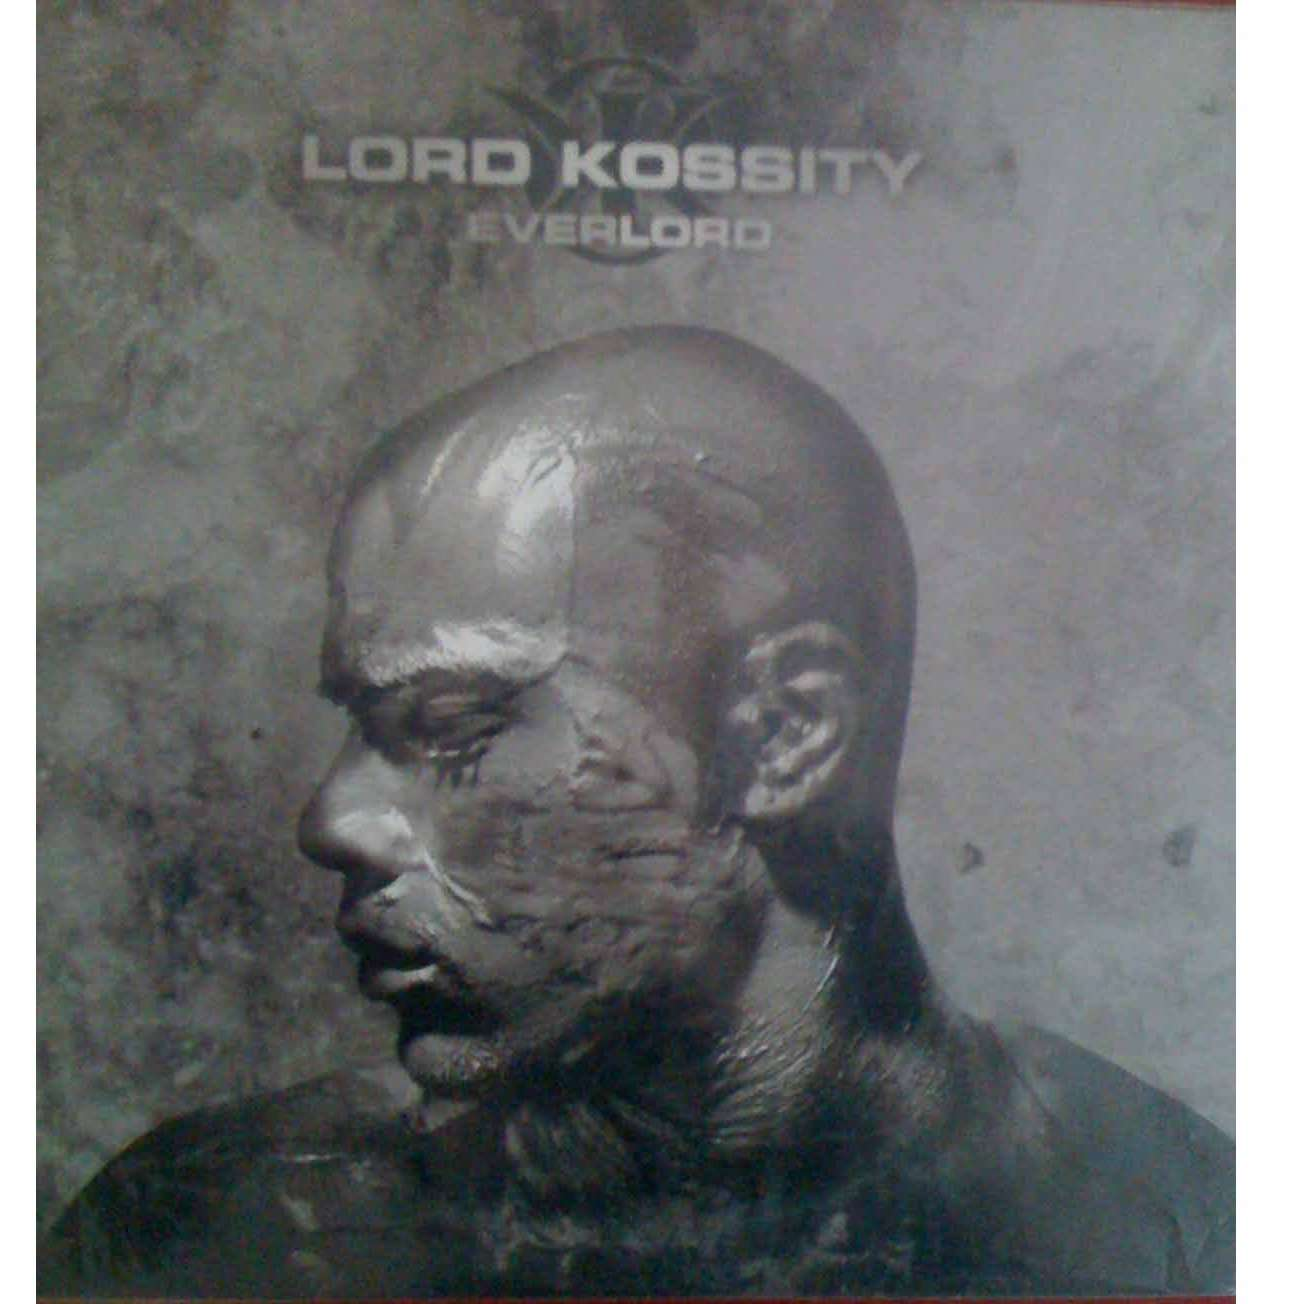 lord kossity everlord